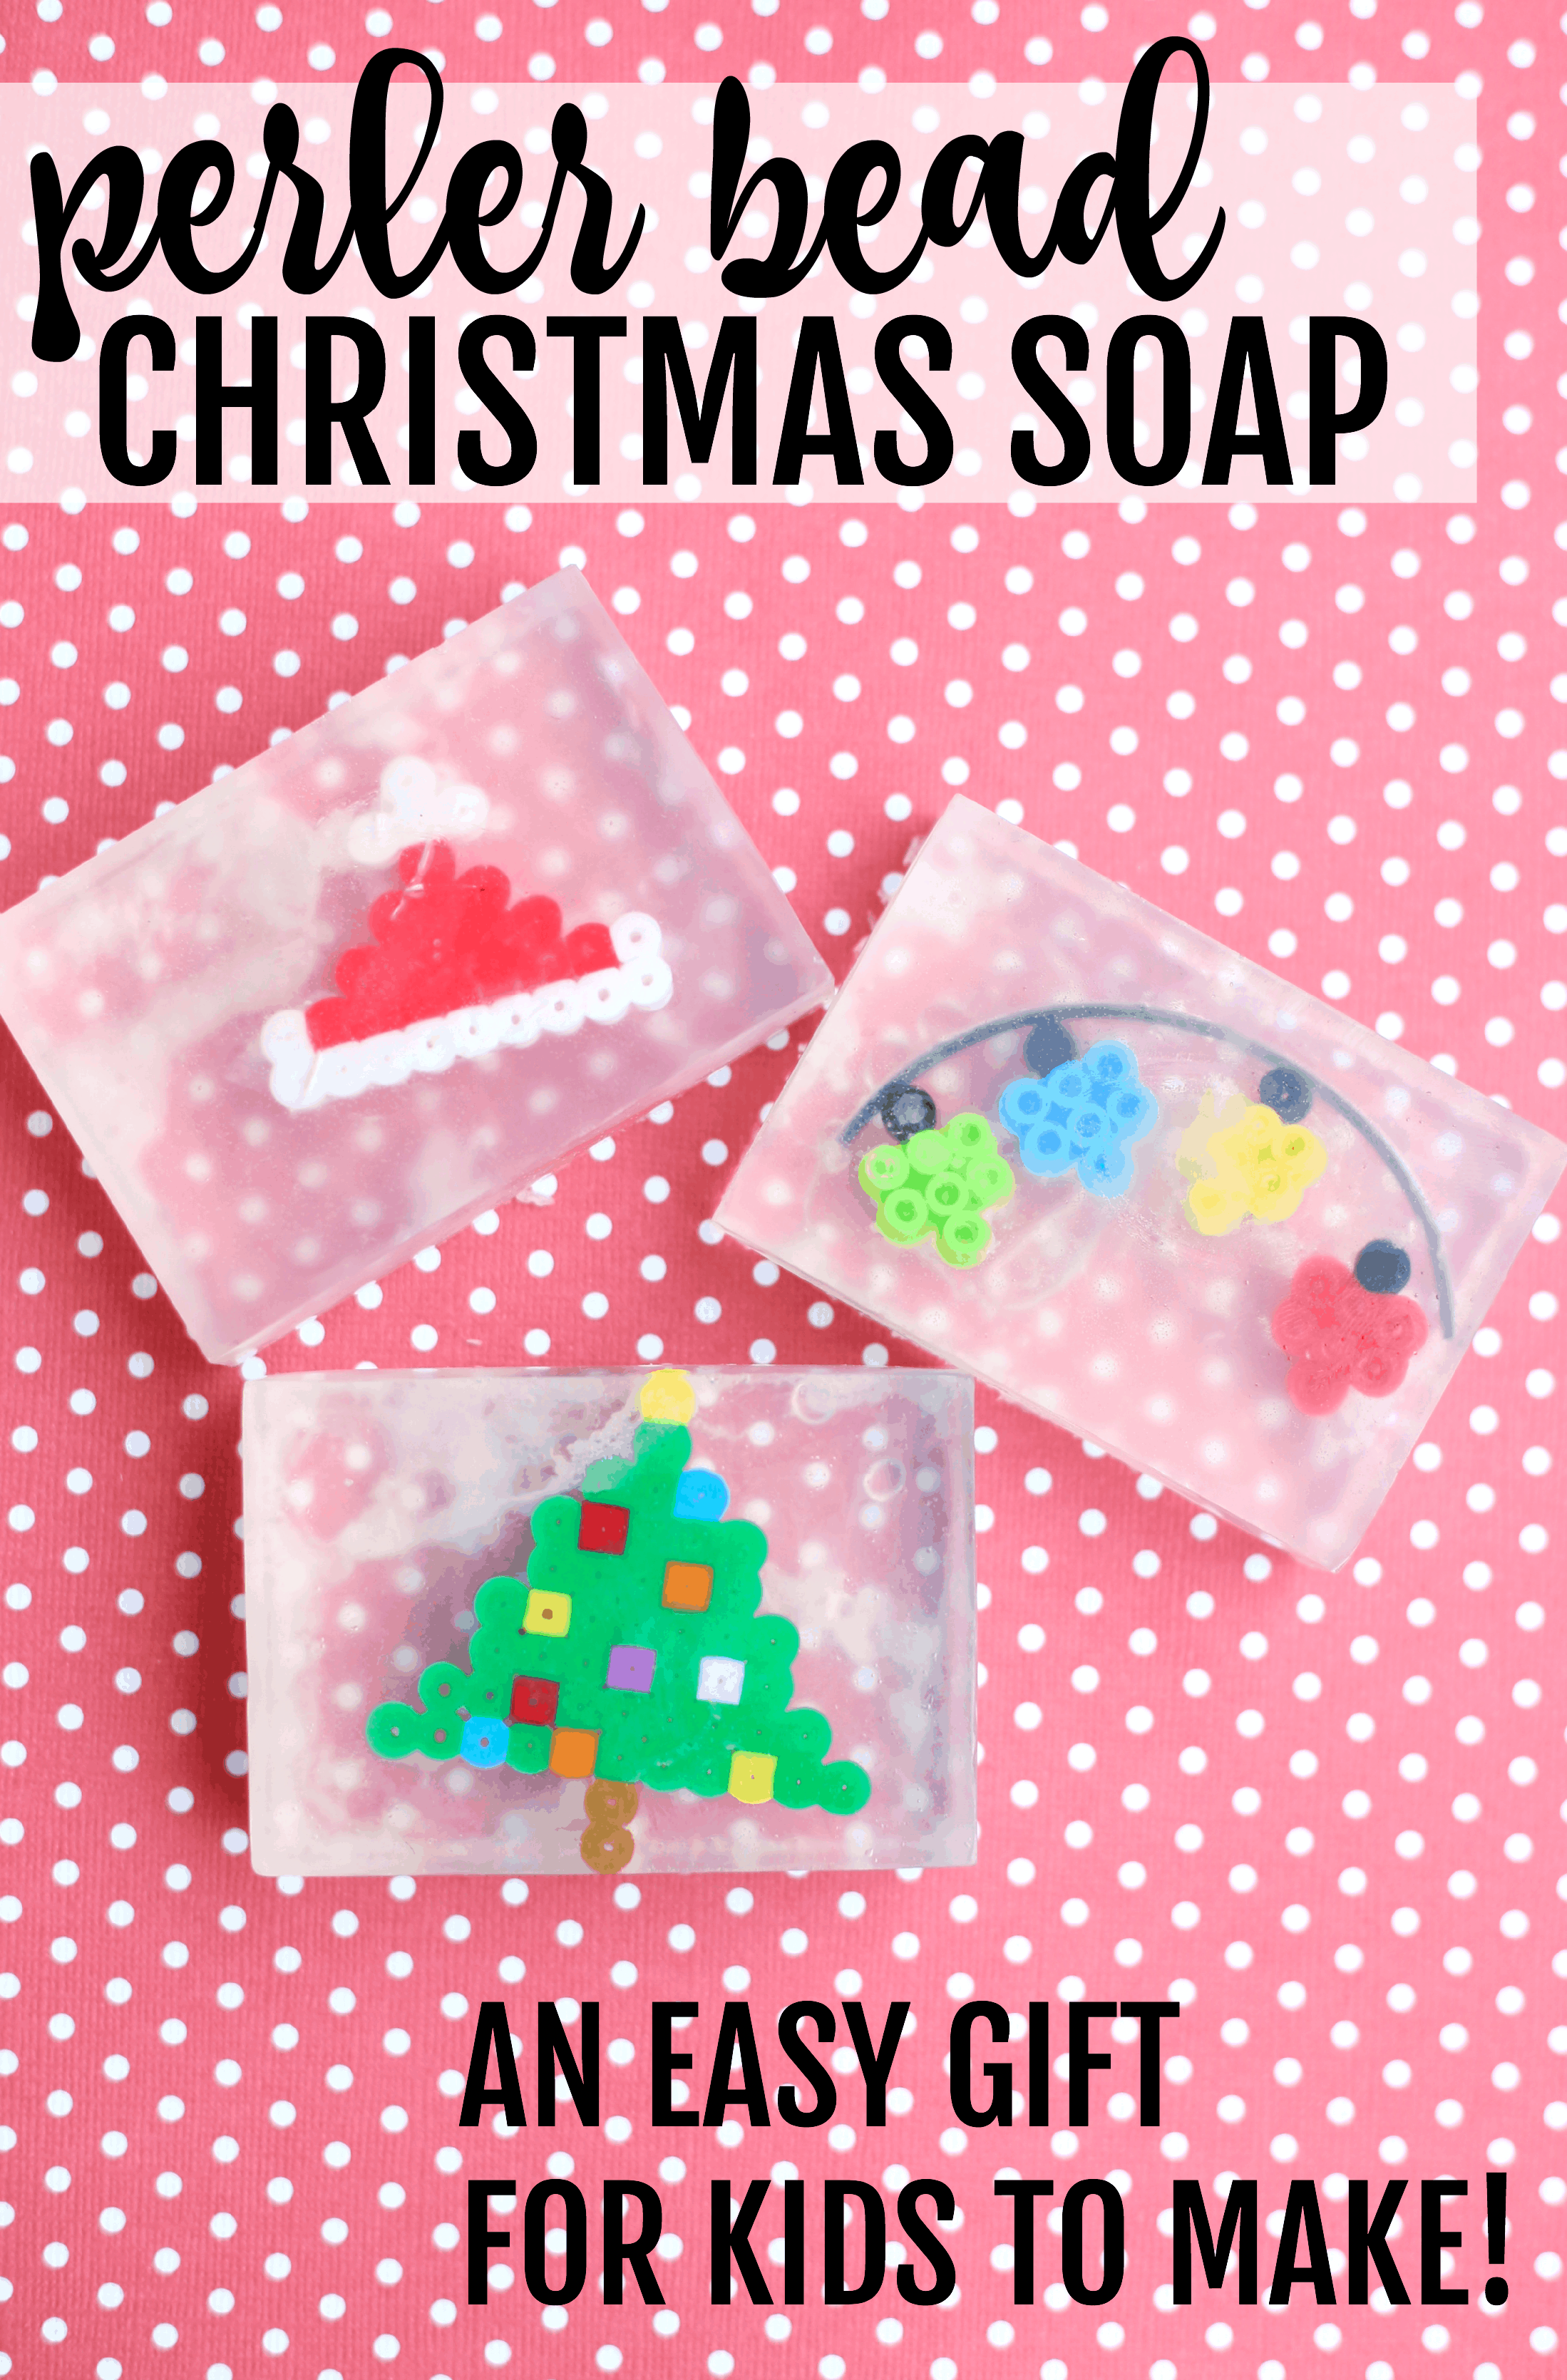 Perler Bead Christmas Soap: Easy Gift for Kids to Make - I